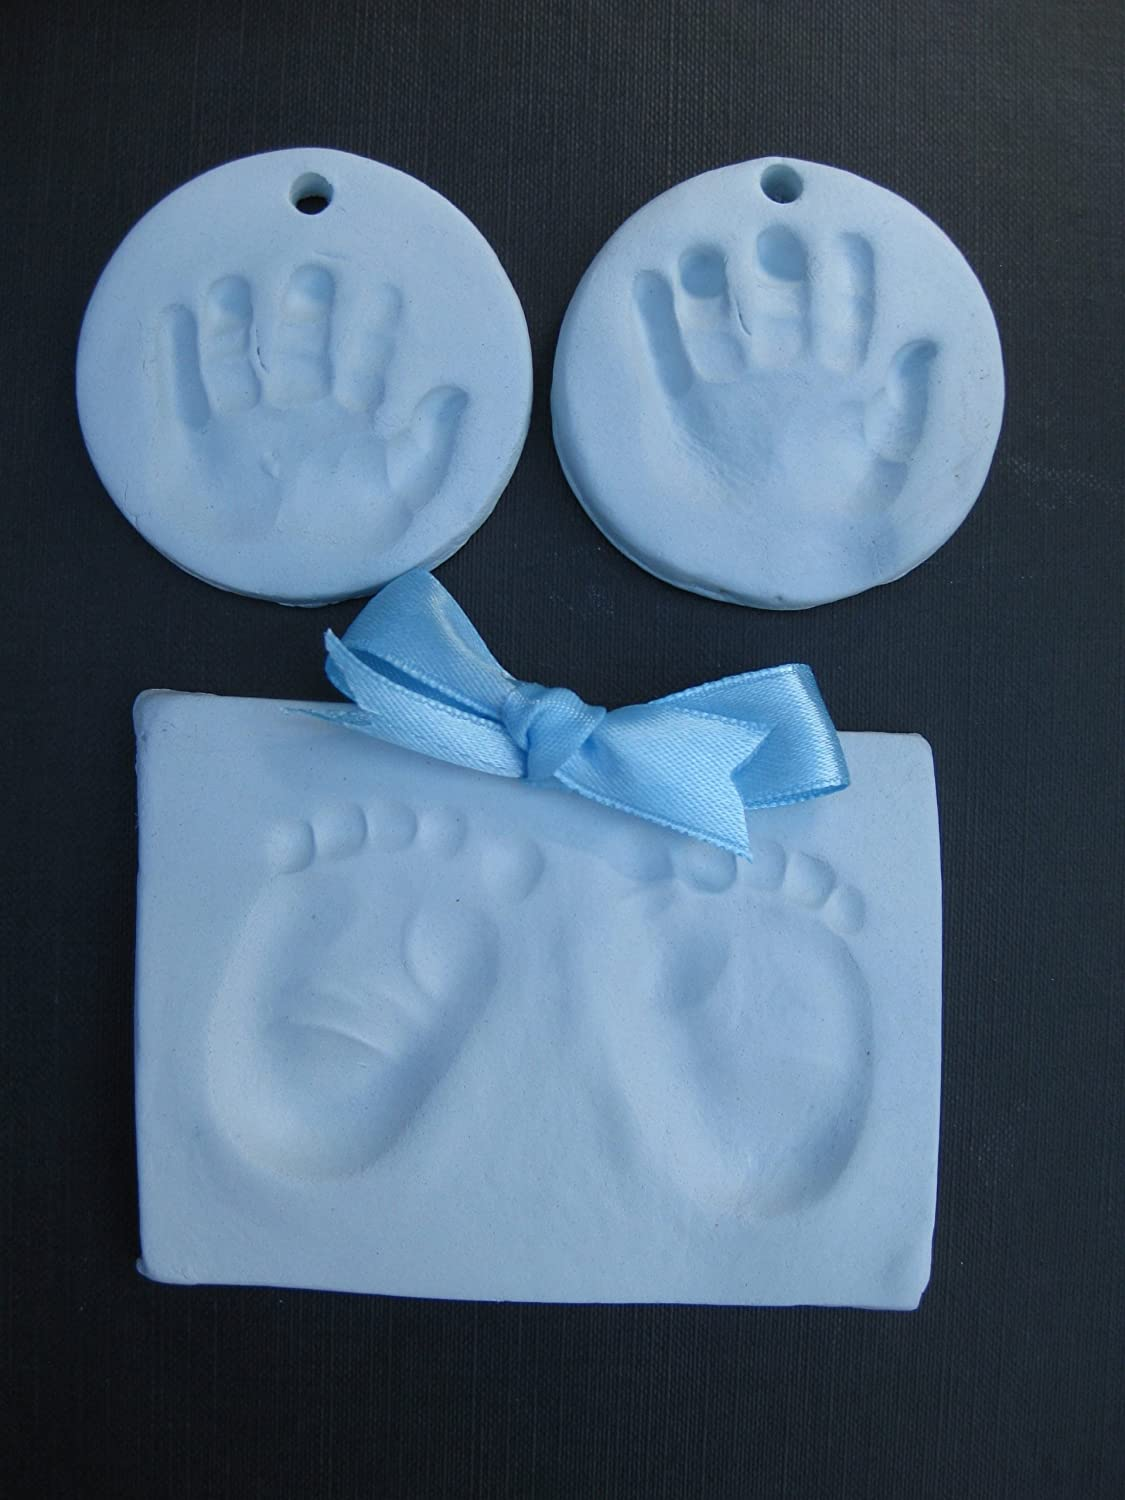 Soft blue baby handprint air drying clay kit- makes 4-6 newborn prints baby moose